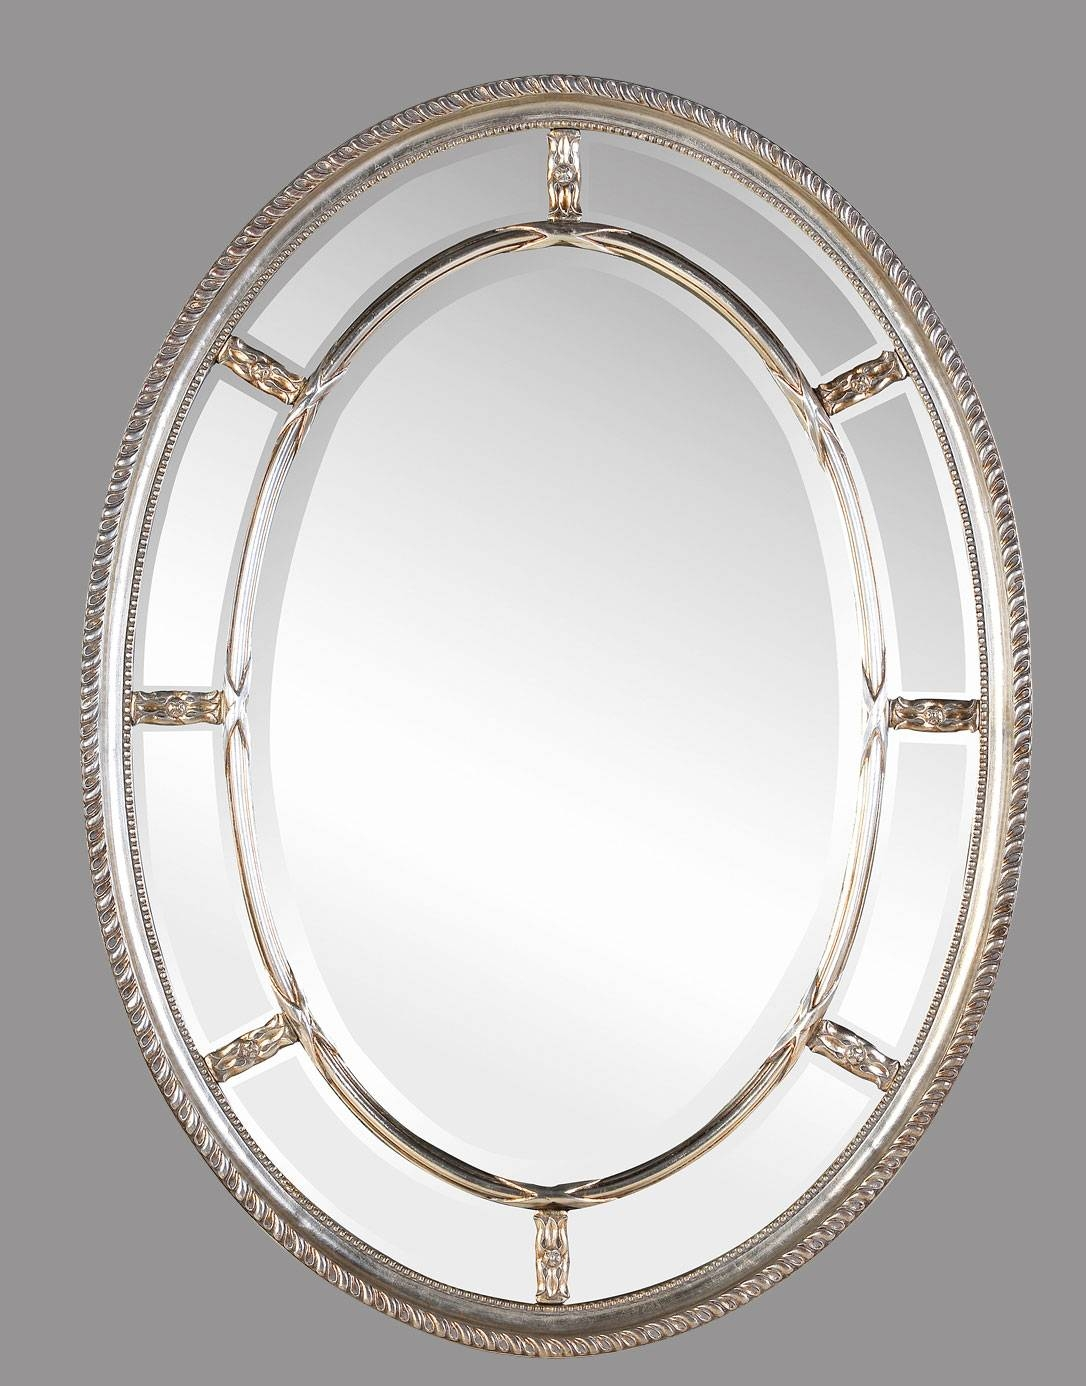 Bathroom Oval Mirrors - Add Beauty And Elegance To Your Bathroom throughout Silver Oval Mirrors (Image 4 of 25)